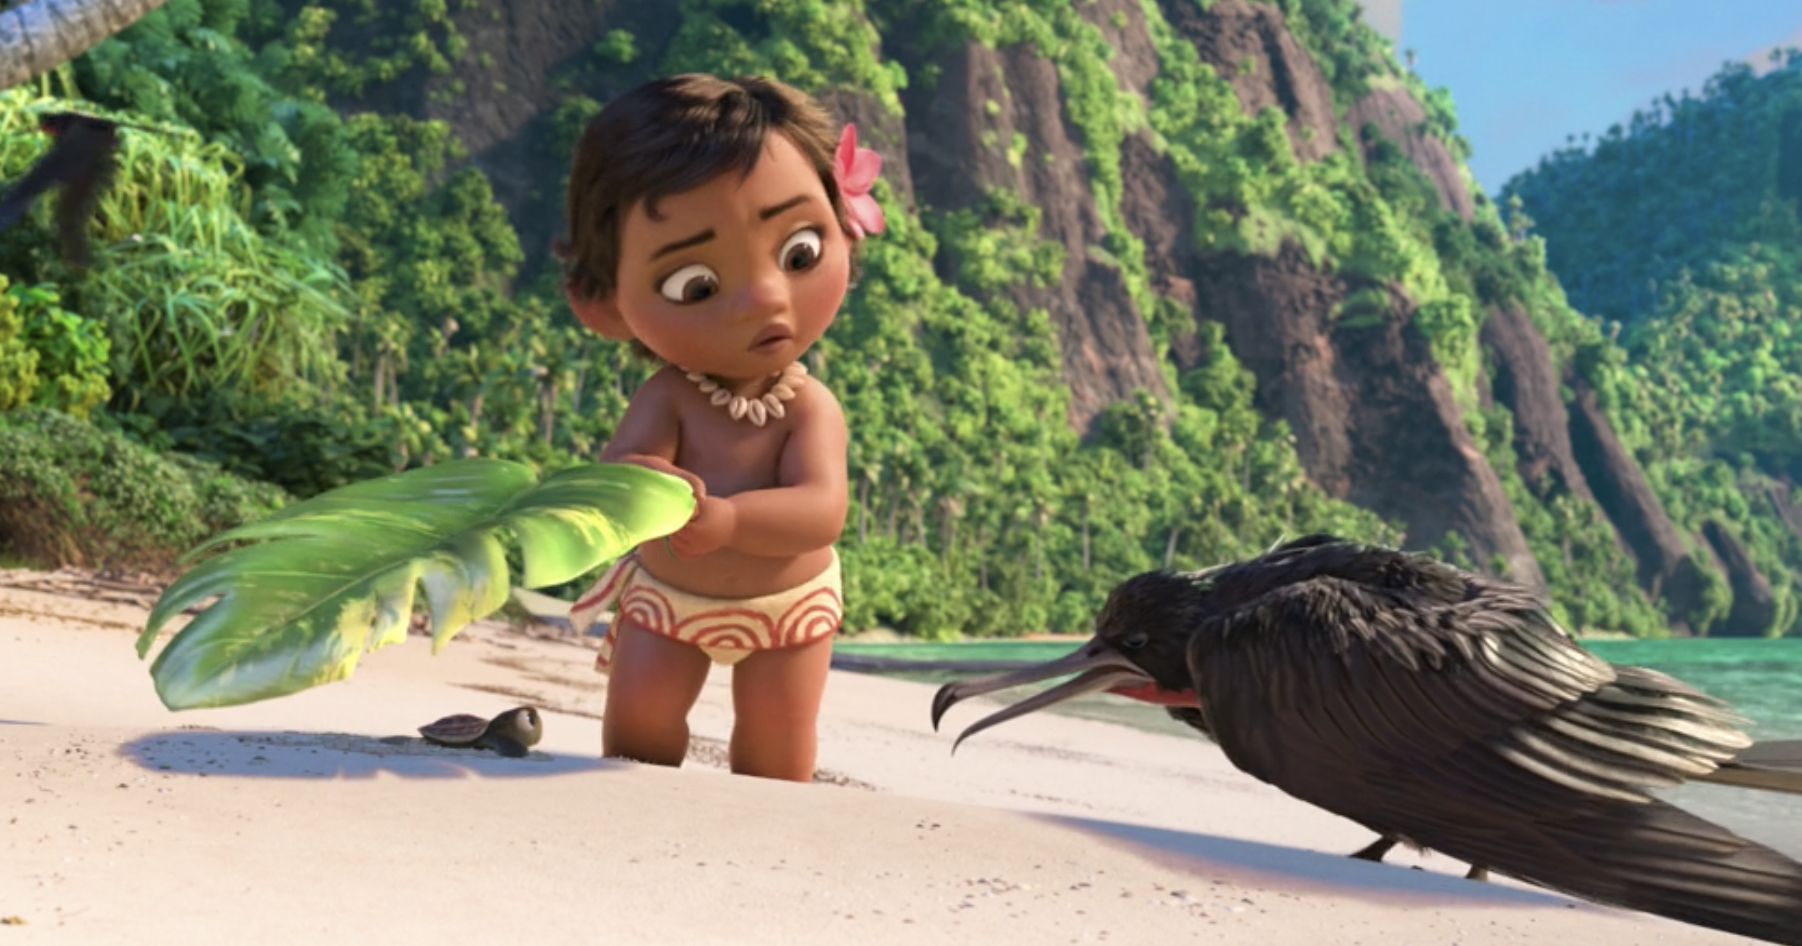 Baby Moana covering a baby turtle with a leaf and a bird looking angrily at them